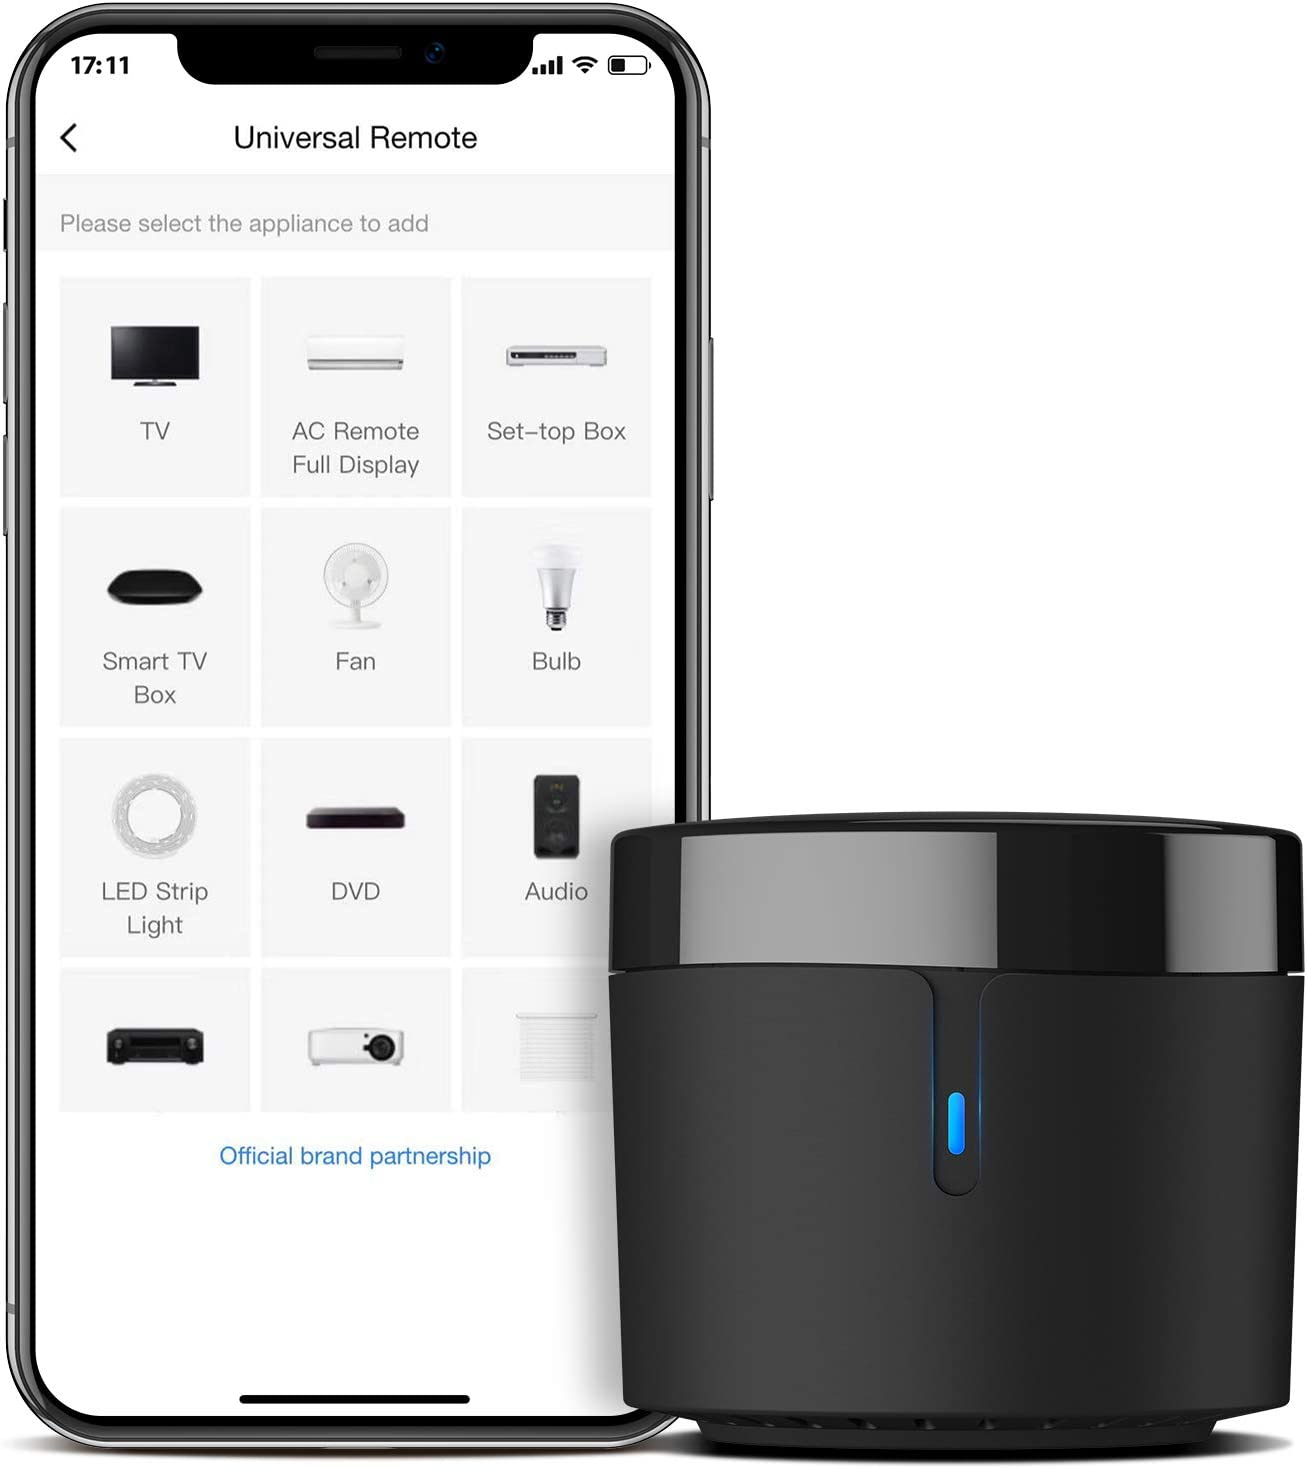 BroadLink Smart Home Hub-WiFi Remote Control IR Blaster for Smart Life Home Automation, TV Remote, Works with Alexa, Google Home, IFTTT (RM4 Mini) - -